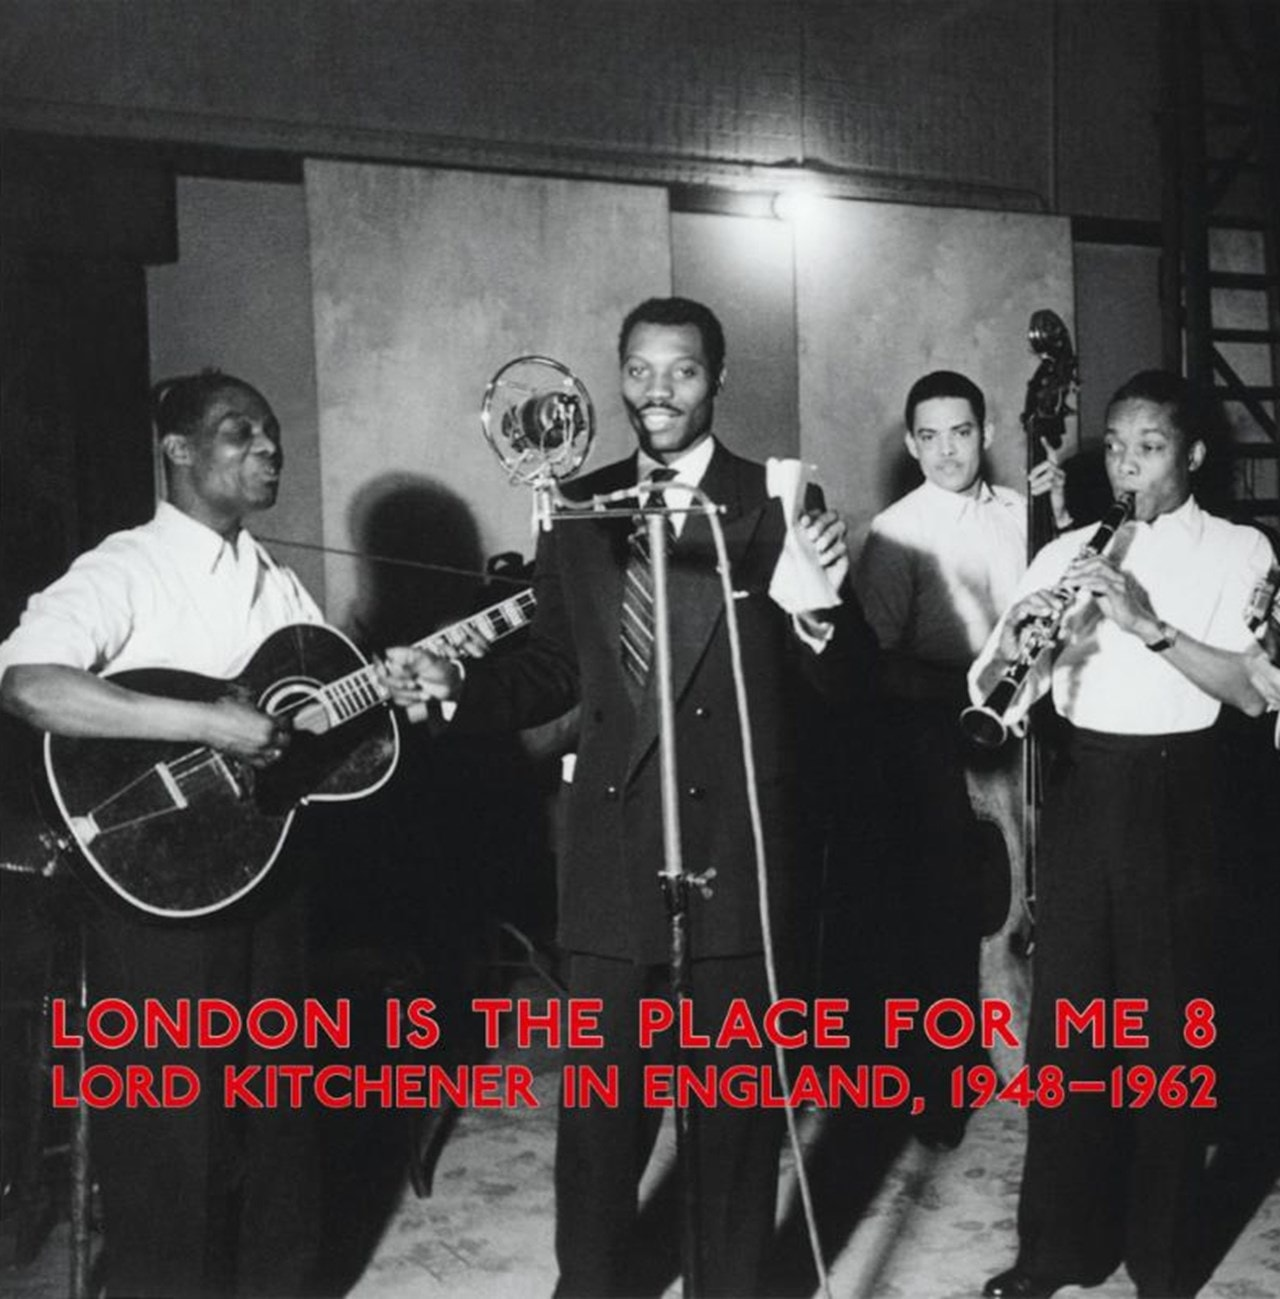 London Is the Place for Me 8: Lord Kitchener in England 1948-1962 - 1